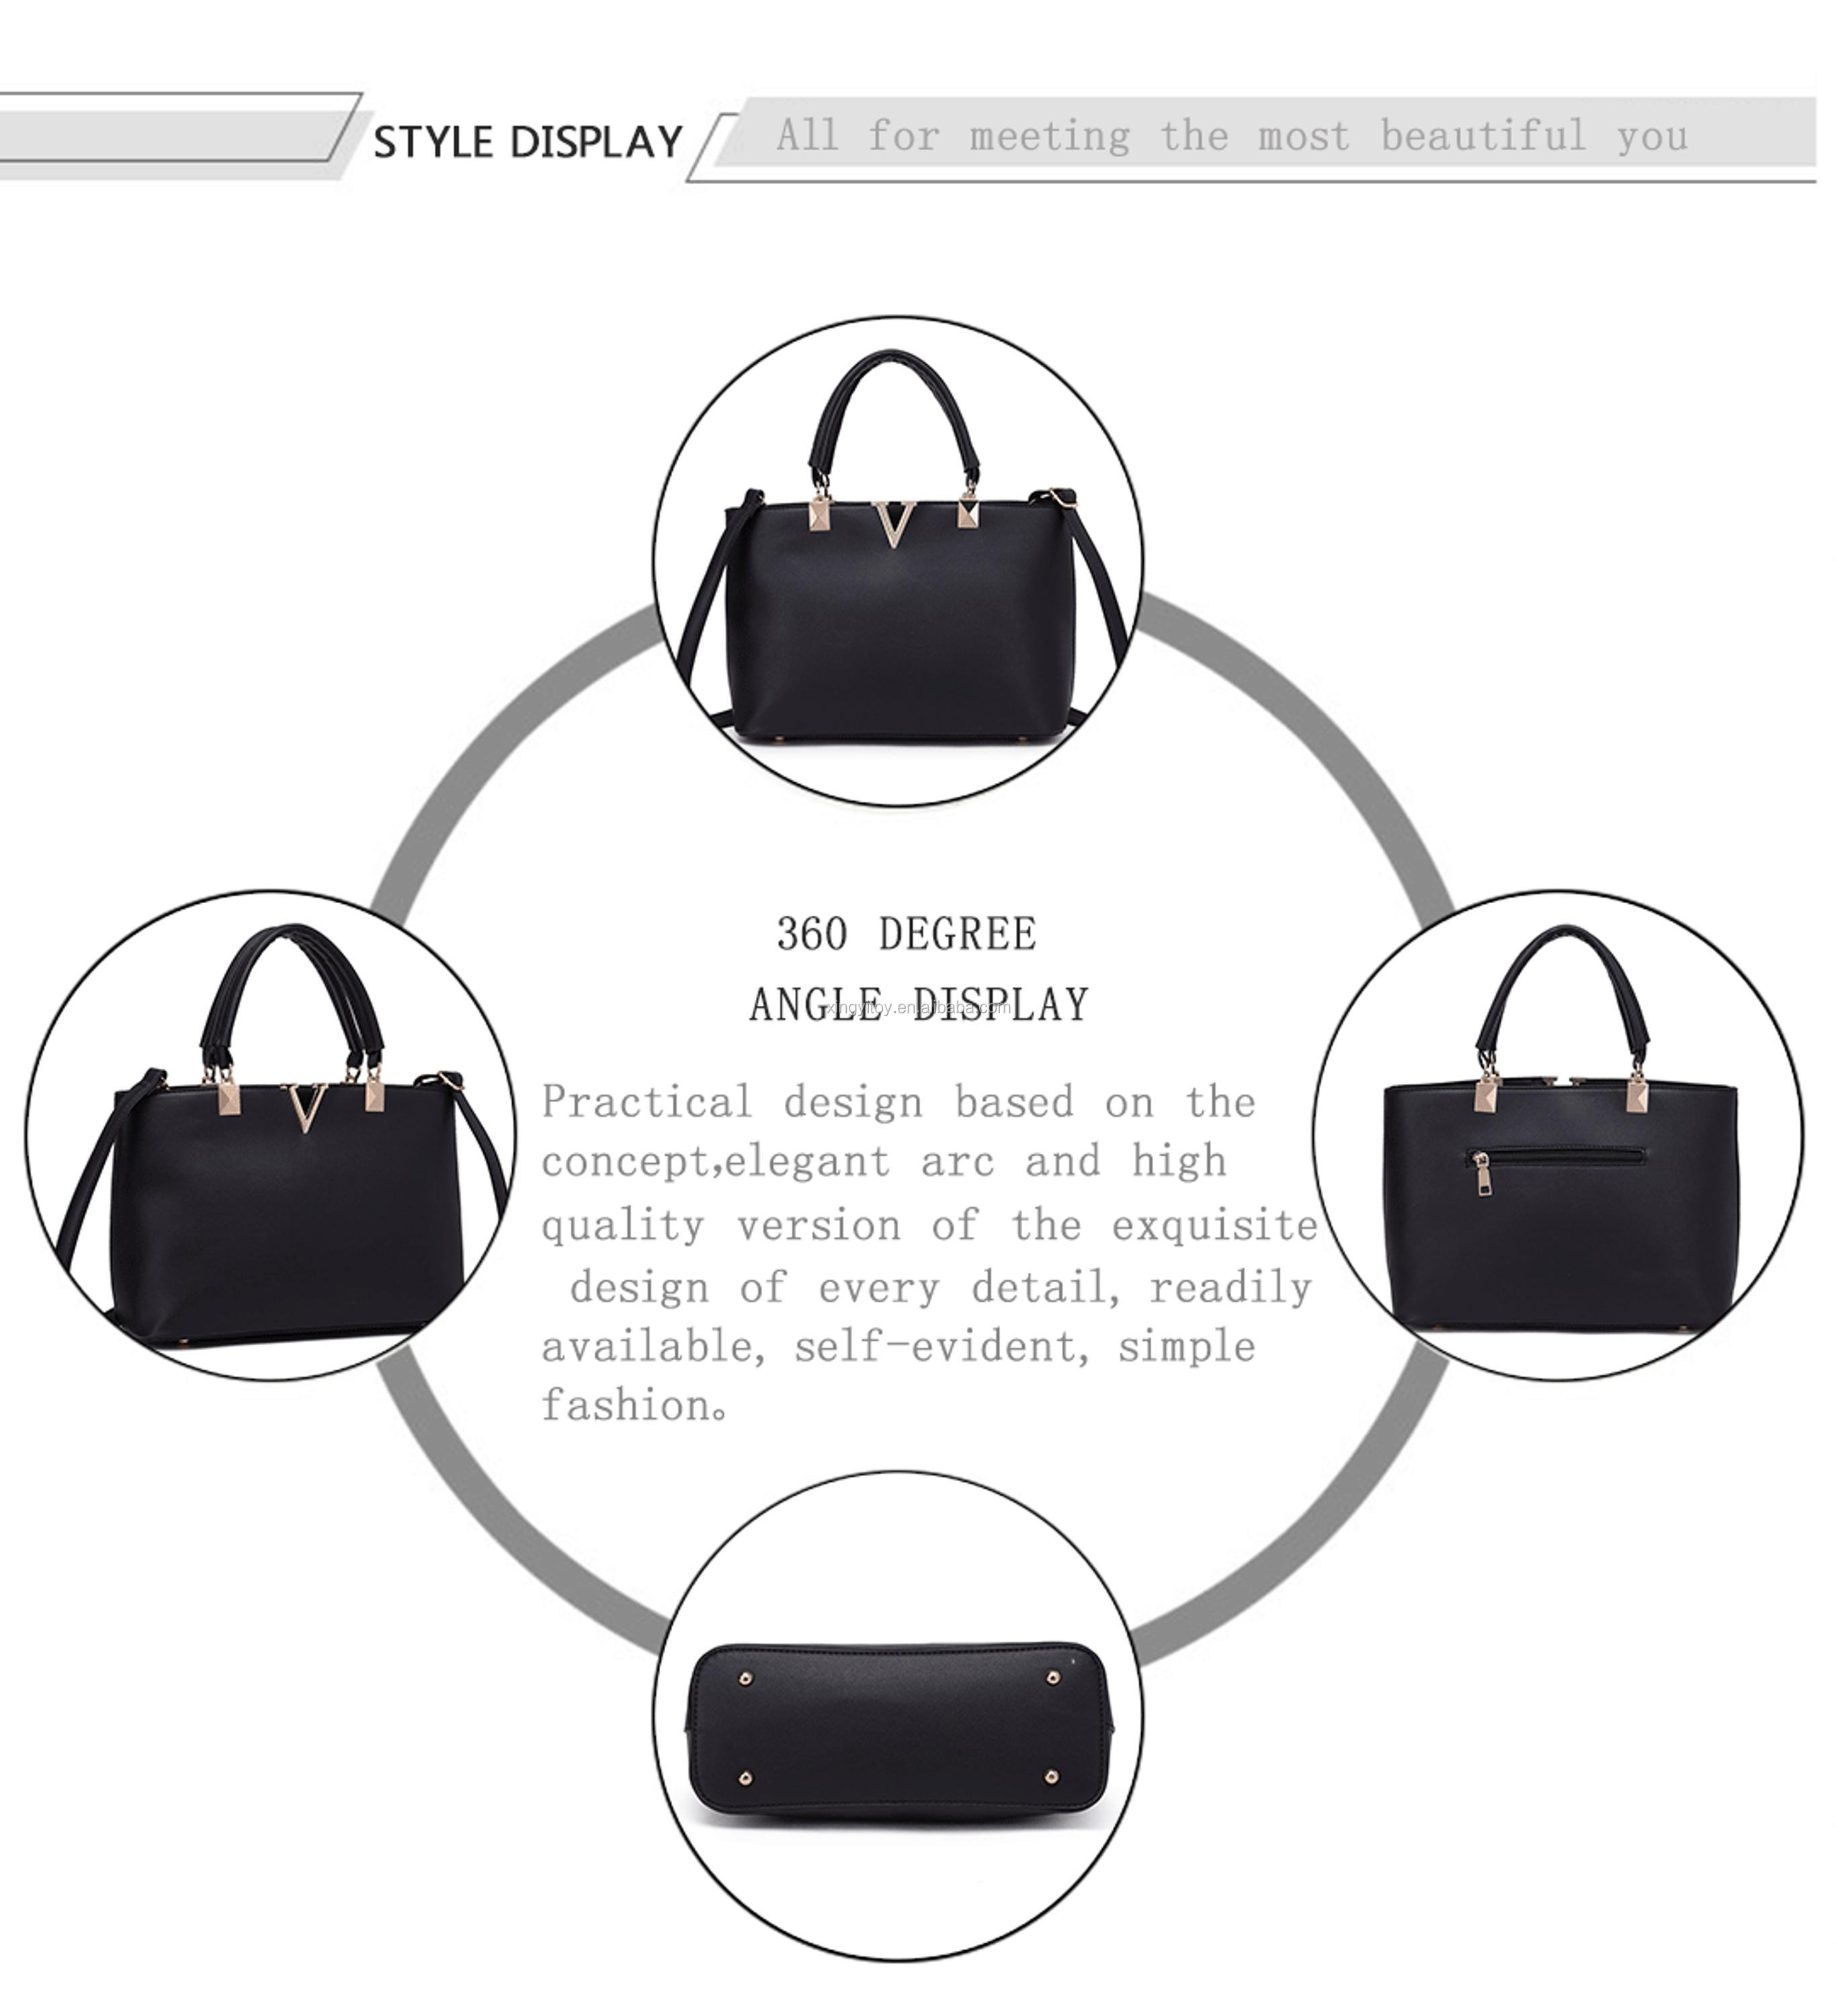 6a76f2854ab Ladies Fashion Designer Celebrity Tote Bags Women's Quality Hot Selling  Trendy Handbags